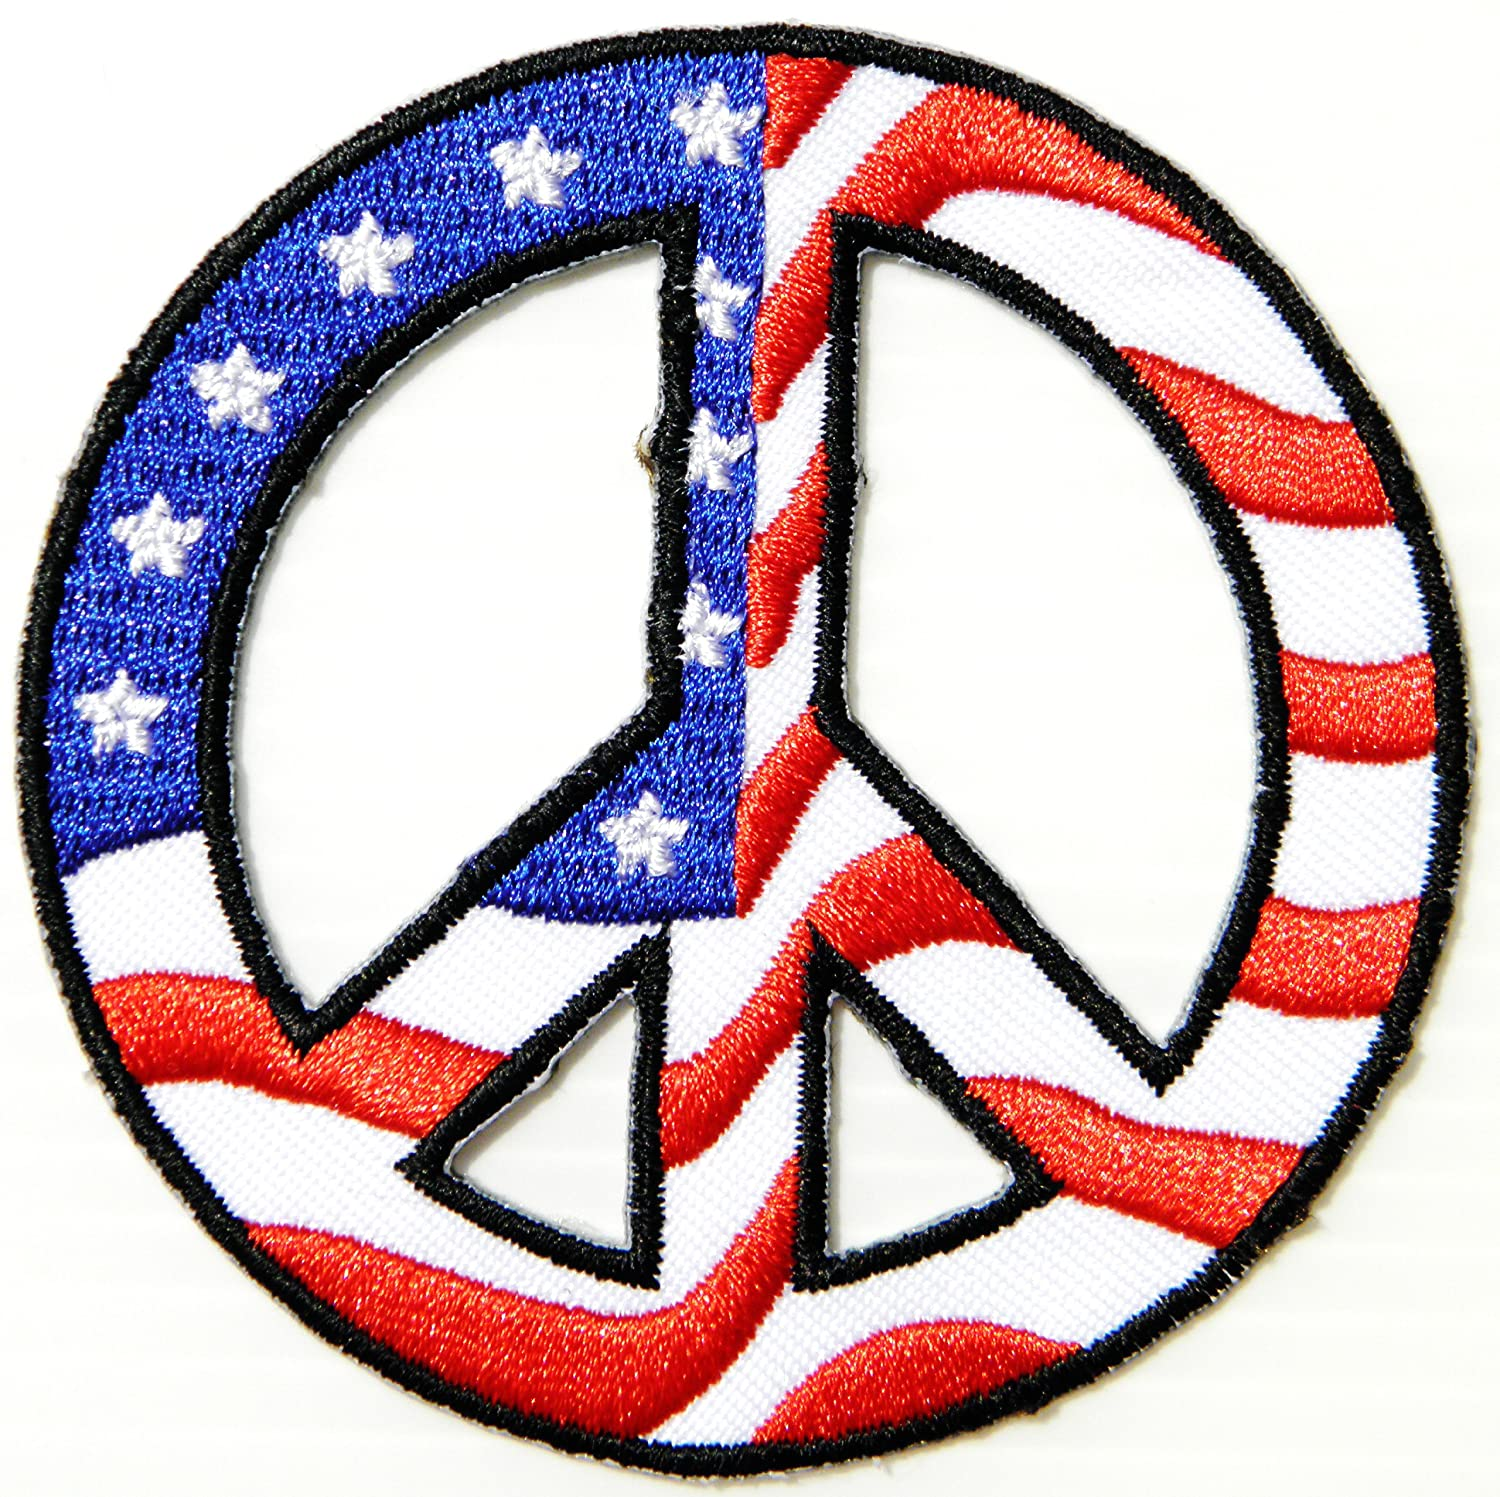 Amazon freedom usa flag peace corps sign symbol anti war amazon freedom usa flag peace corps sign symbol anti war hippie retro biker jacket t shirt vest patch sew iron on embroidered badge custom home biocorpaavc